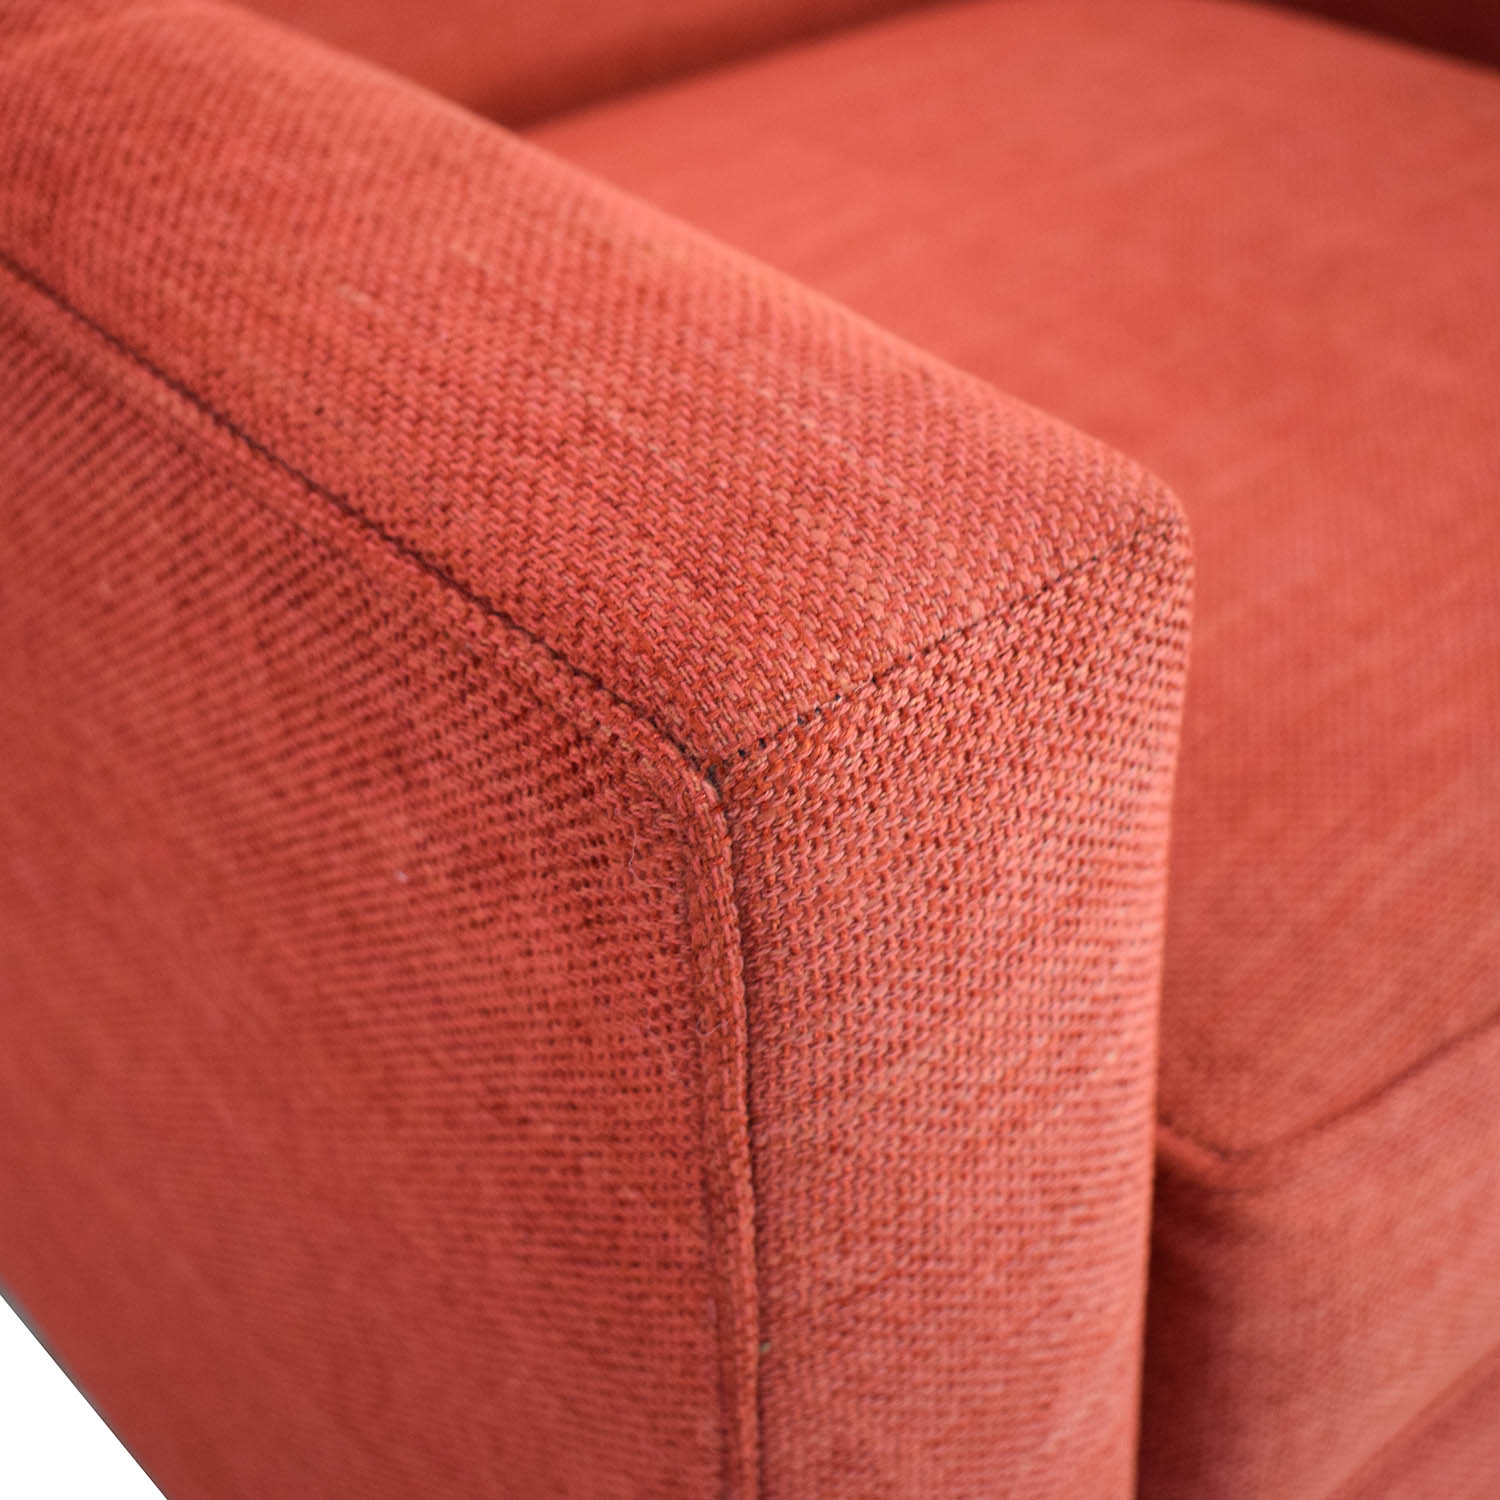 Crate & Barrel Crate & Barrel Hennessy Arm Chair dimensions